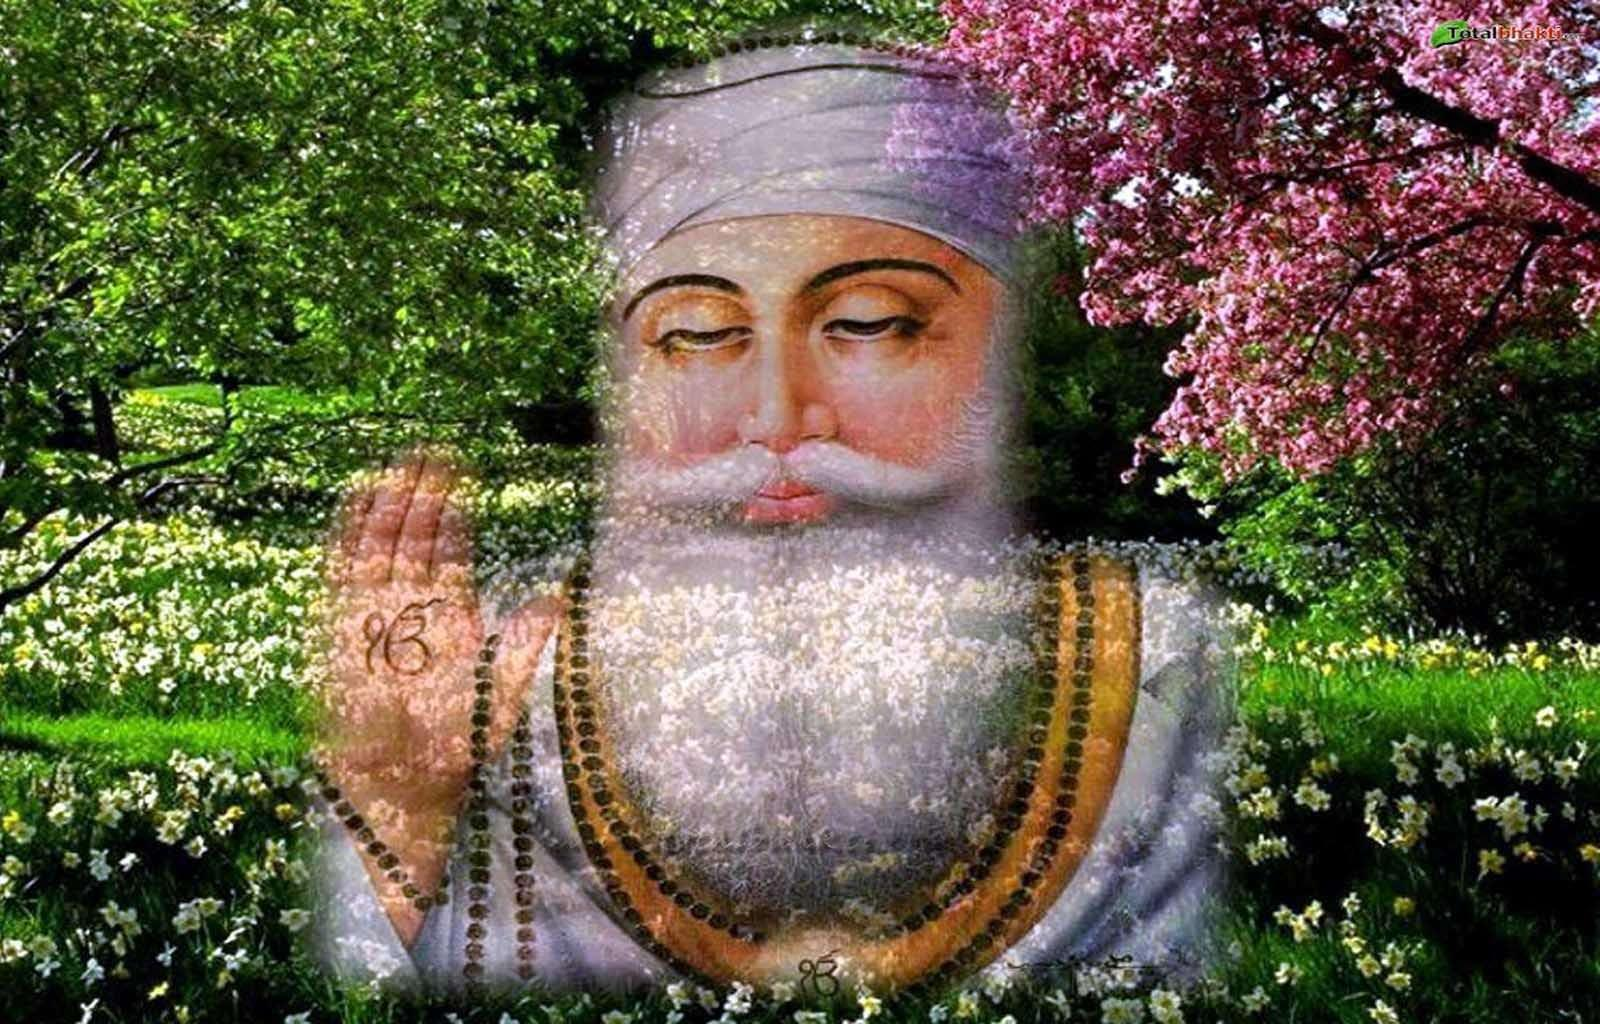 Guru Nanak Hd Wallpaper Sikh God Wallpapers Wallpaper Cave